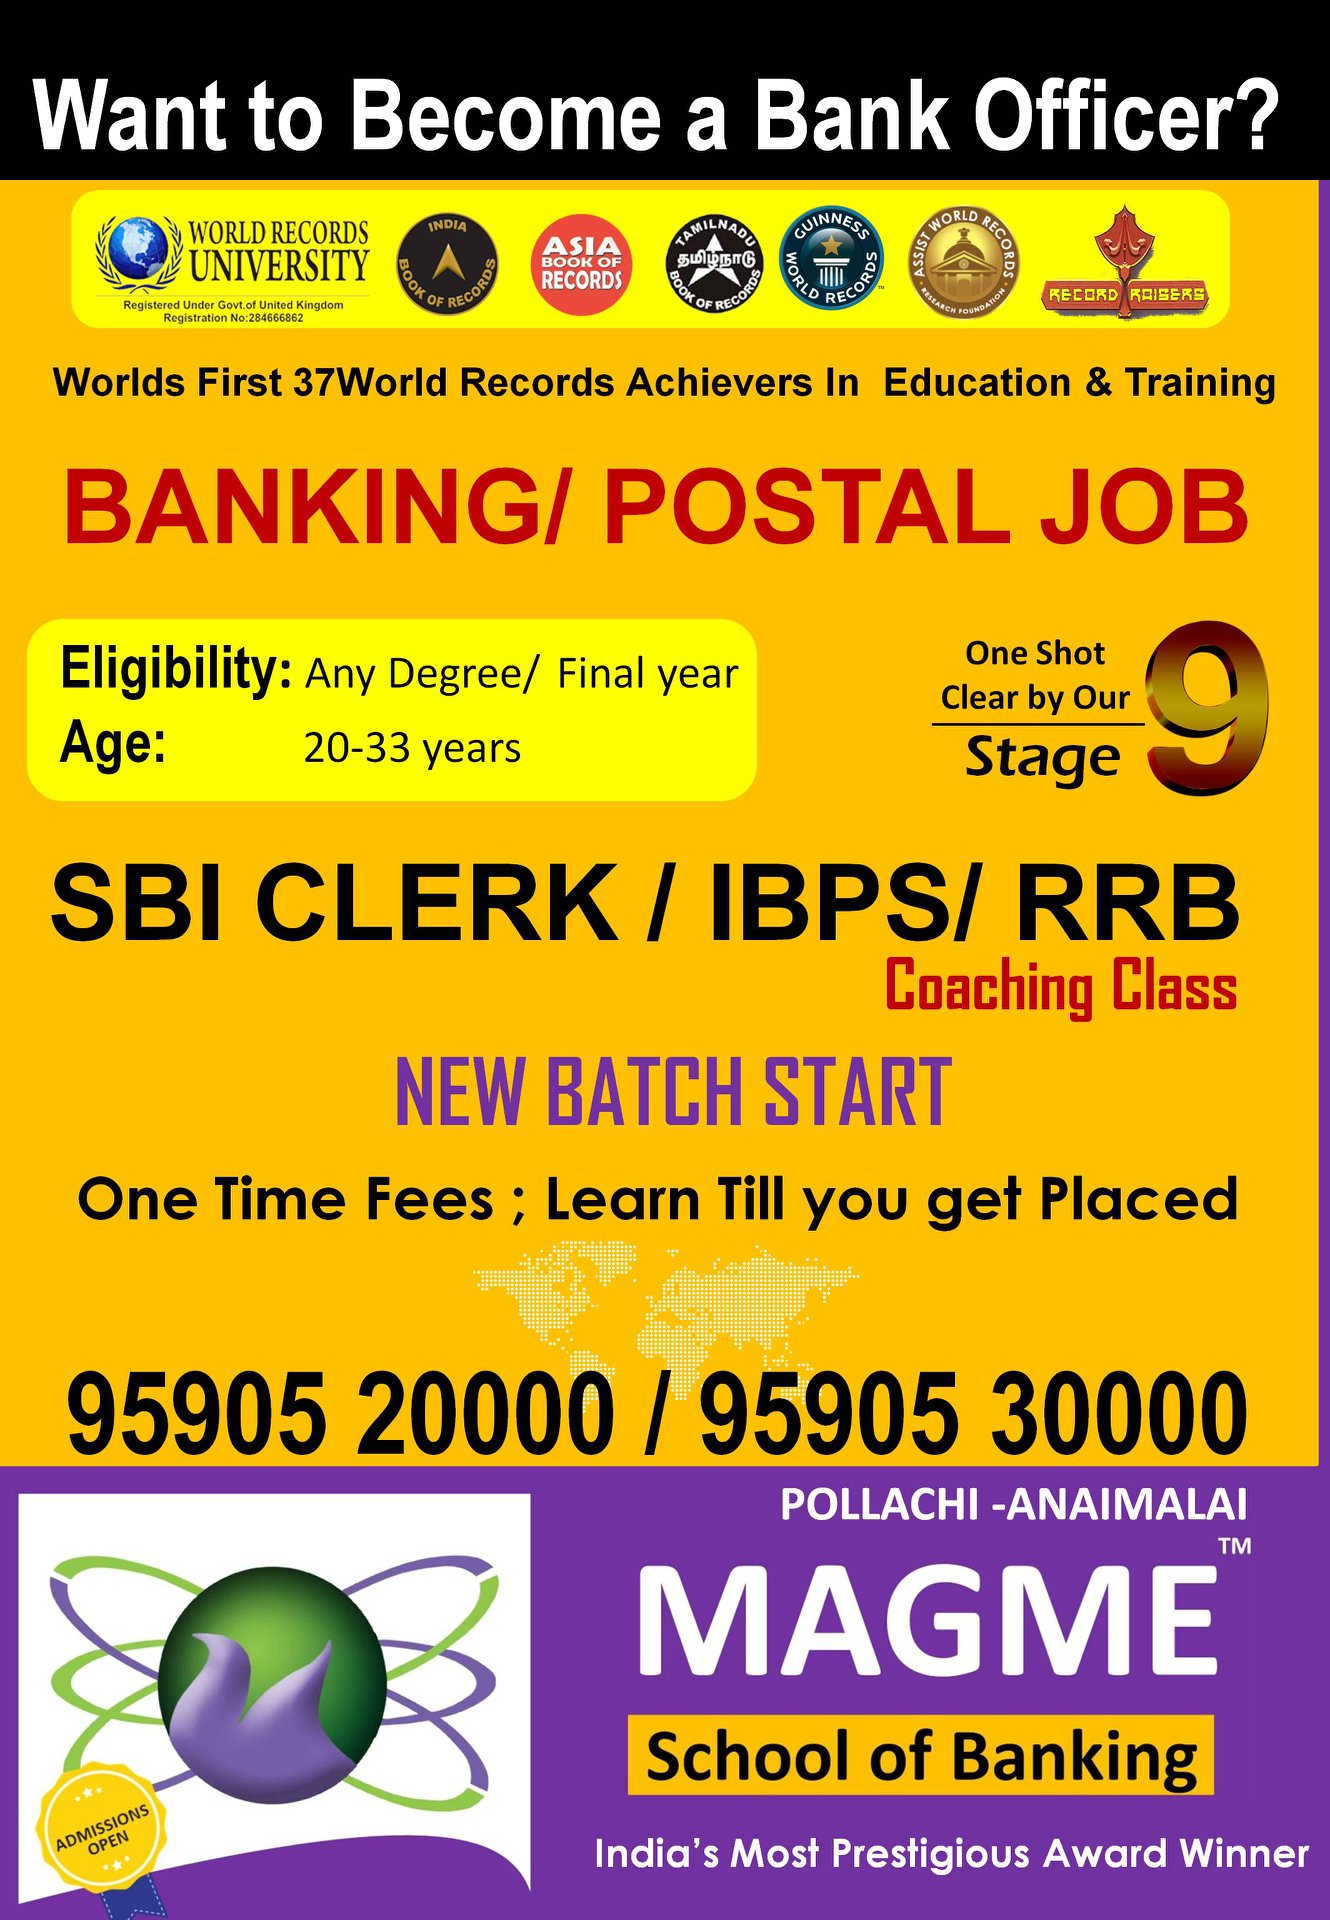 Image for Magme School of Banking - Best coaching classes for competitive exams